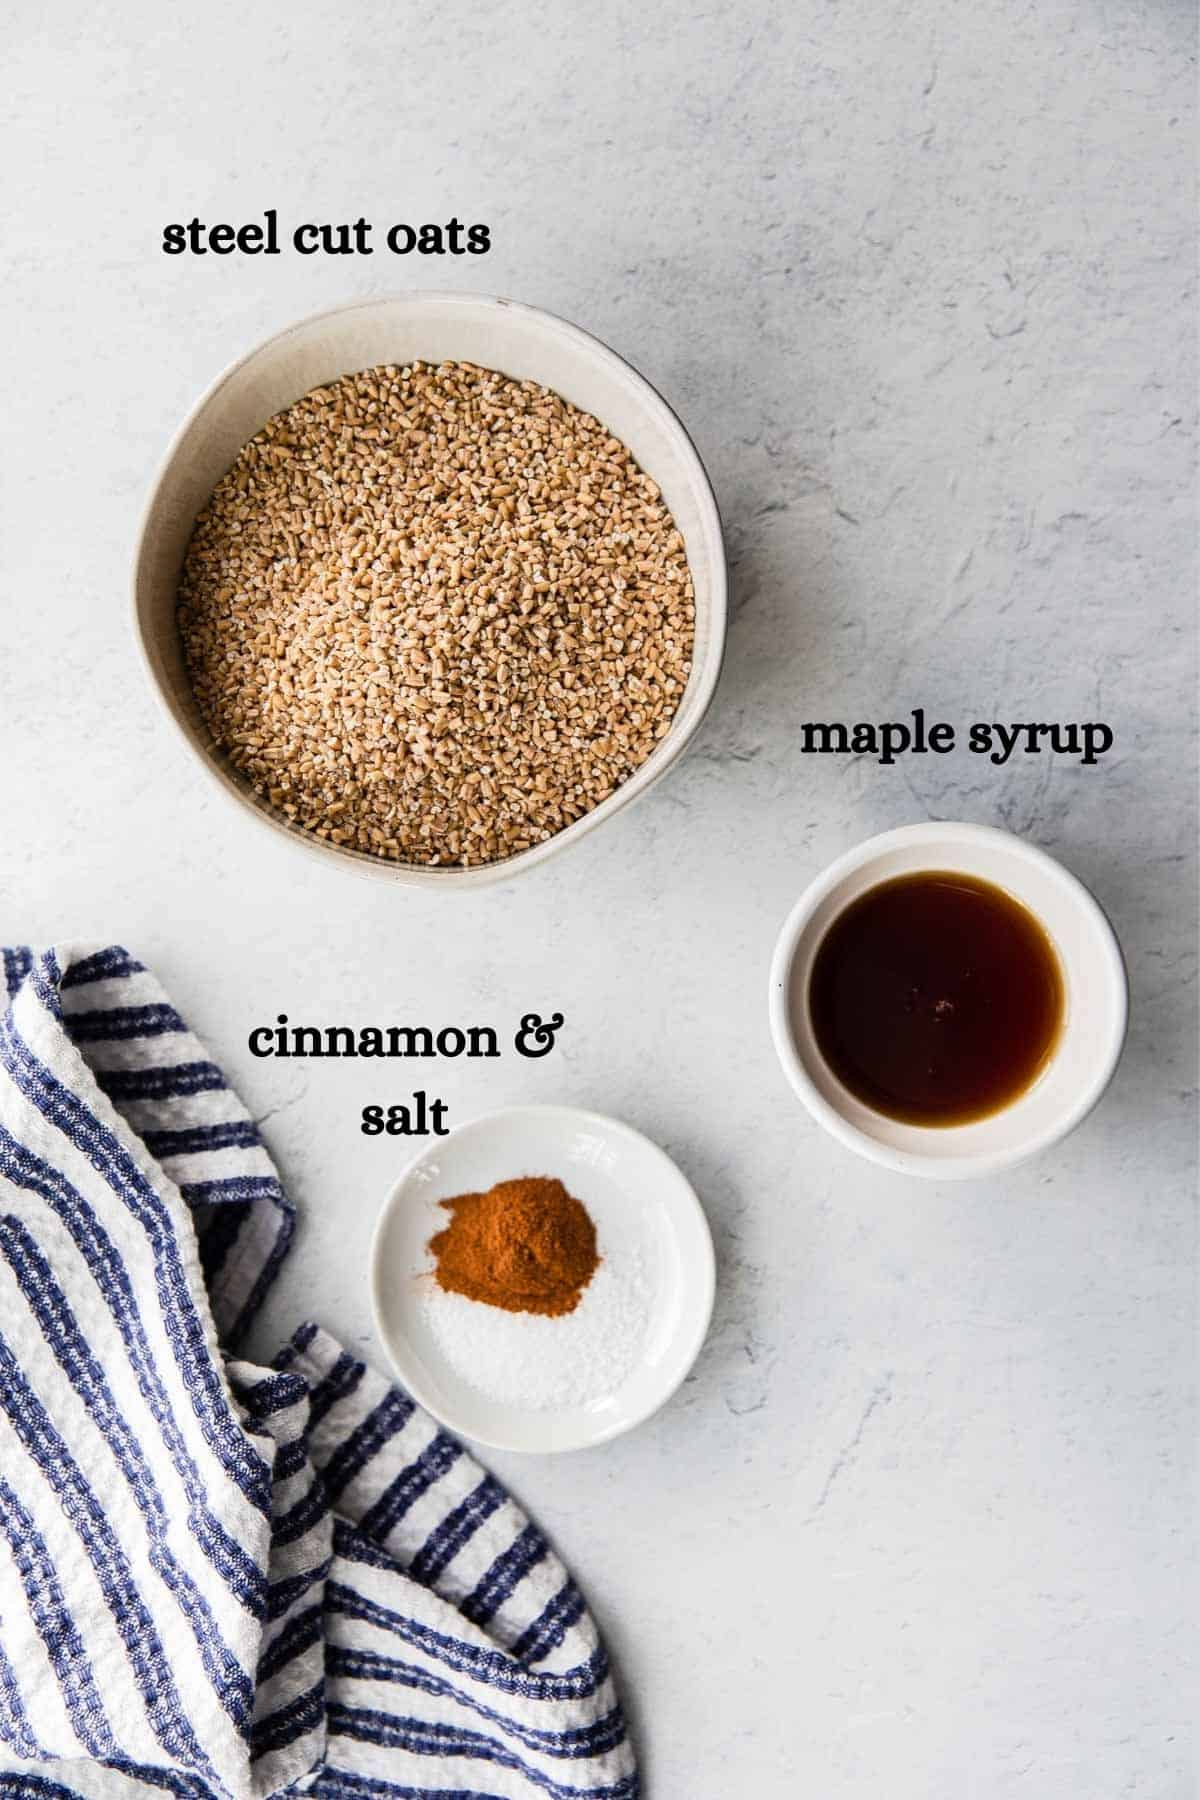 Steel cut oats, cinnamon and salt, and maple syrup.